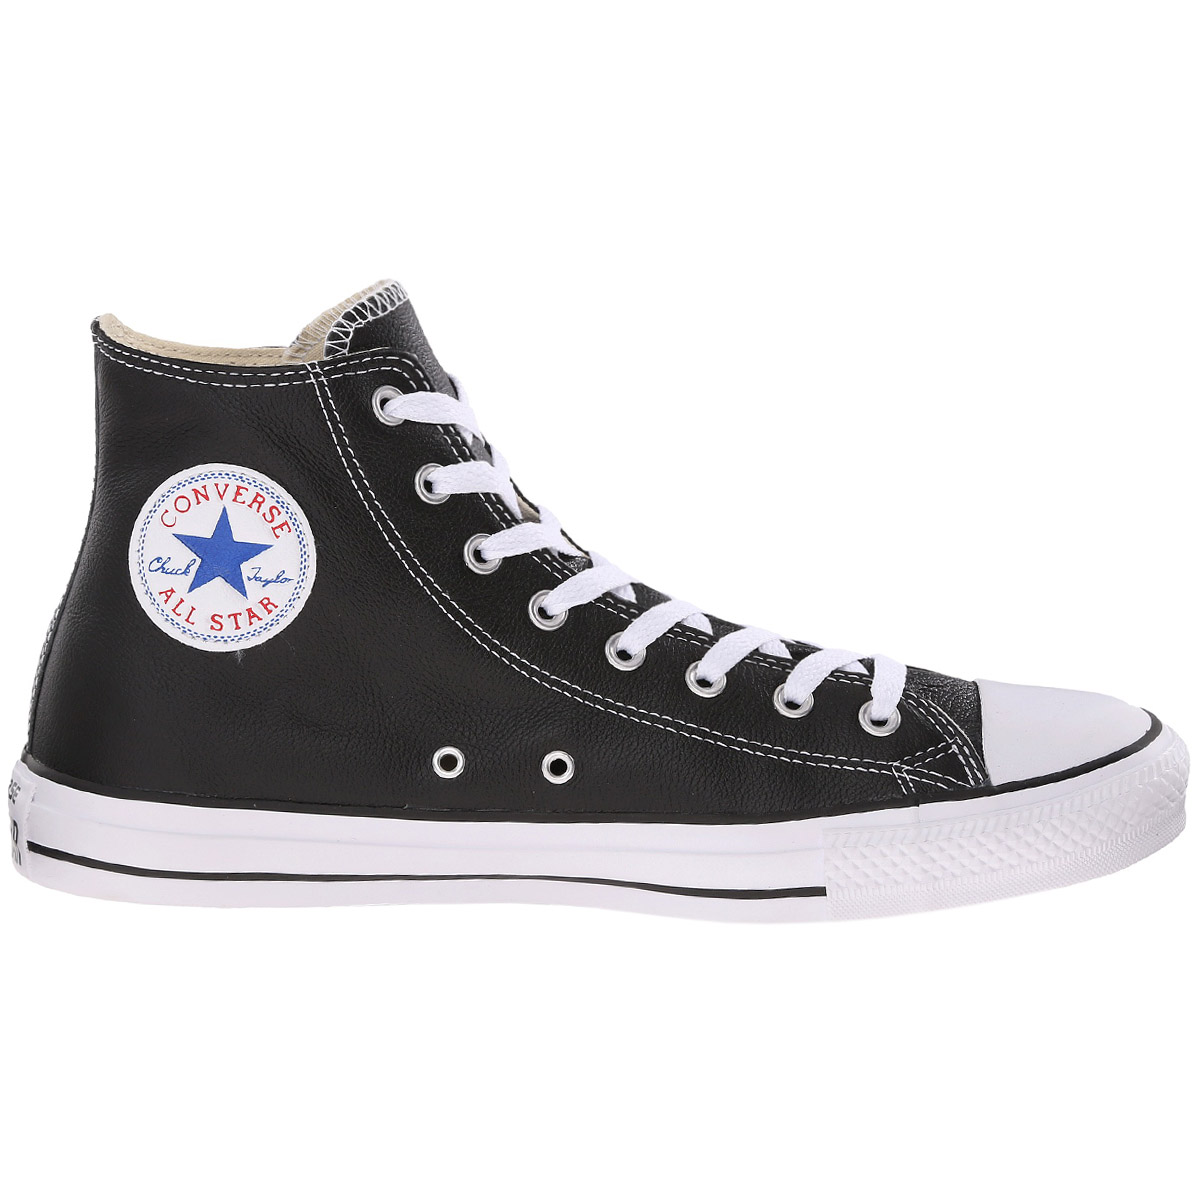 converse chuck taylor all star hi leather schuhe sneaker damen herren leder neu ebay. Black Bedroom Furniture Sets. Home Design Ideas